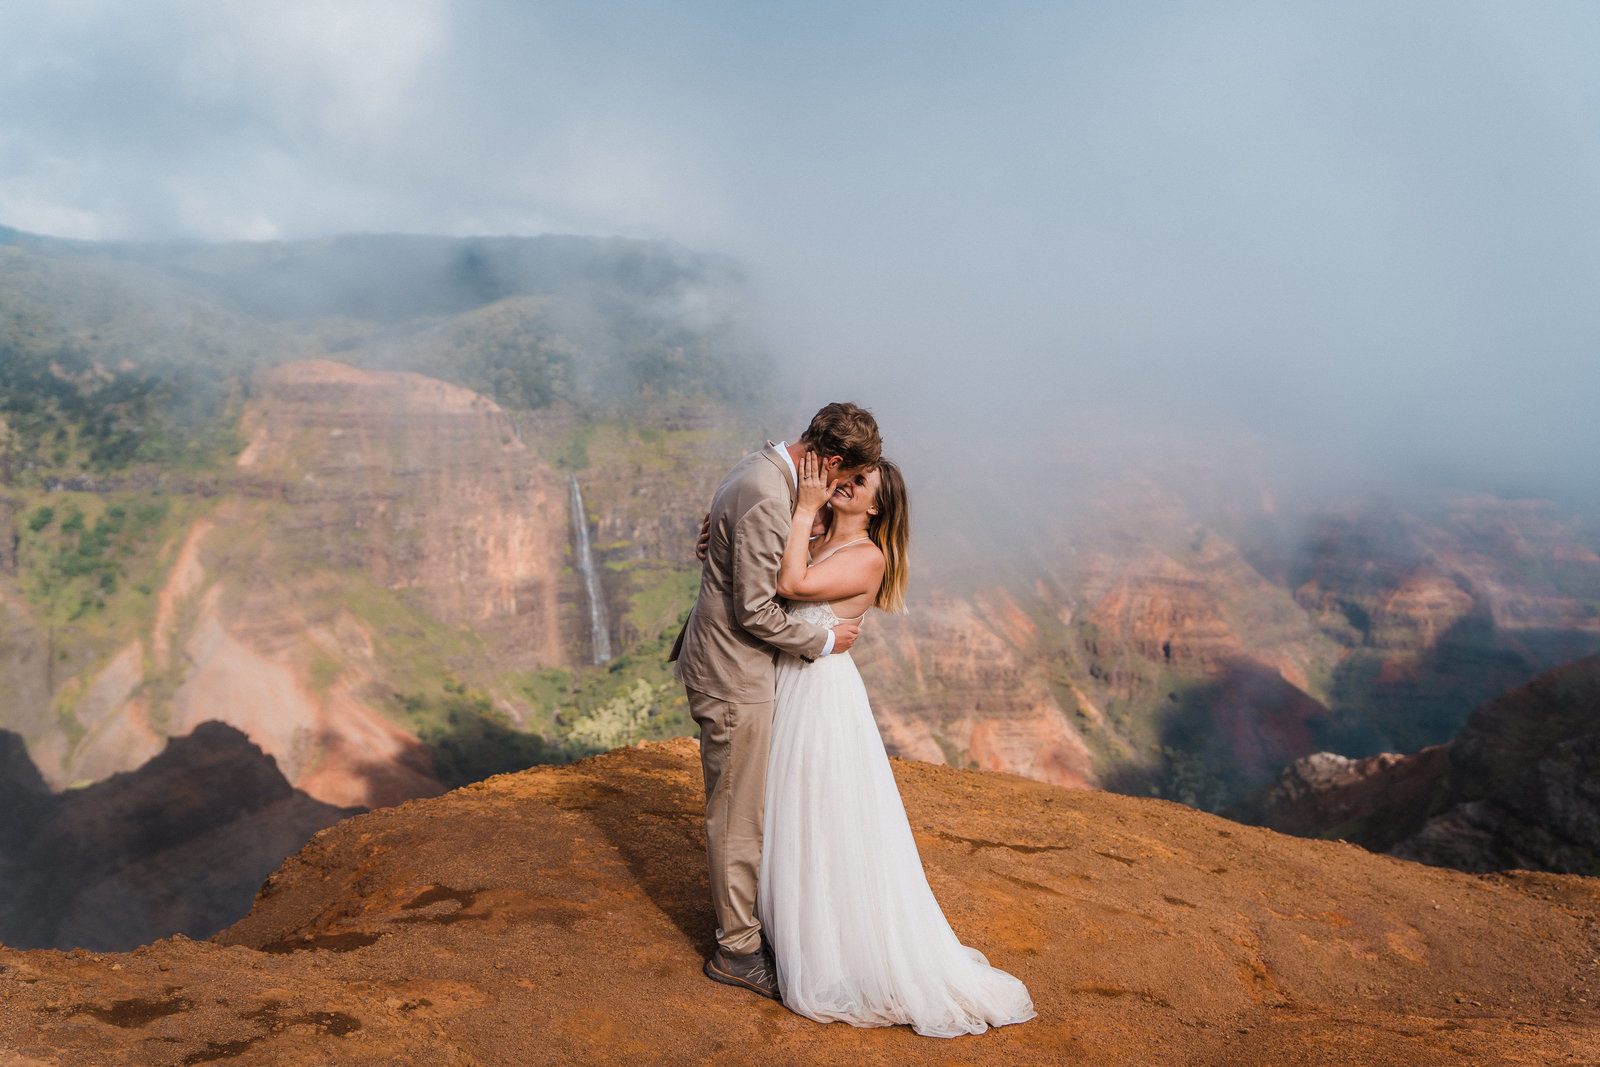 kauai-elopement-waimea-canyon-hawaii-elopement-photographer-sydney-and-ryan-1